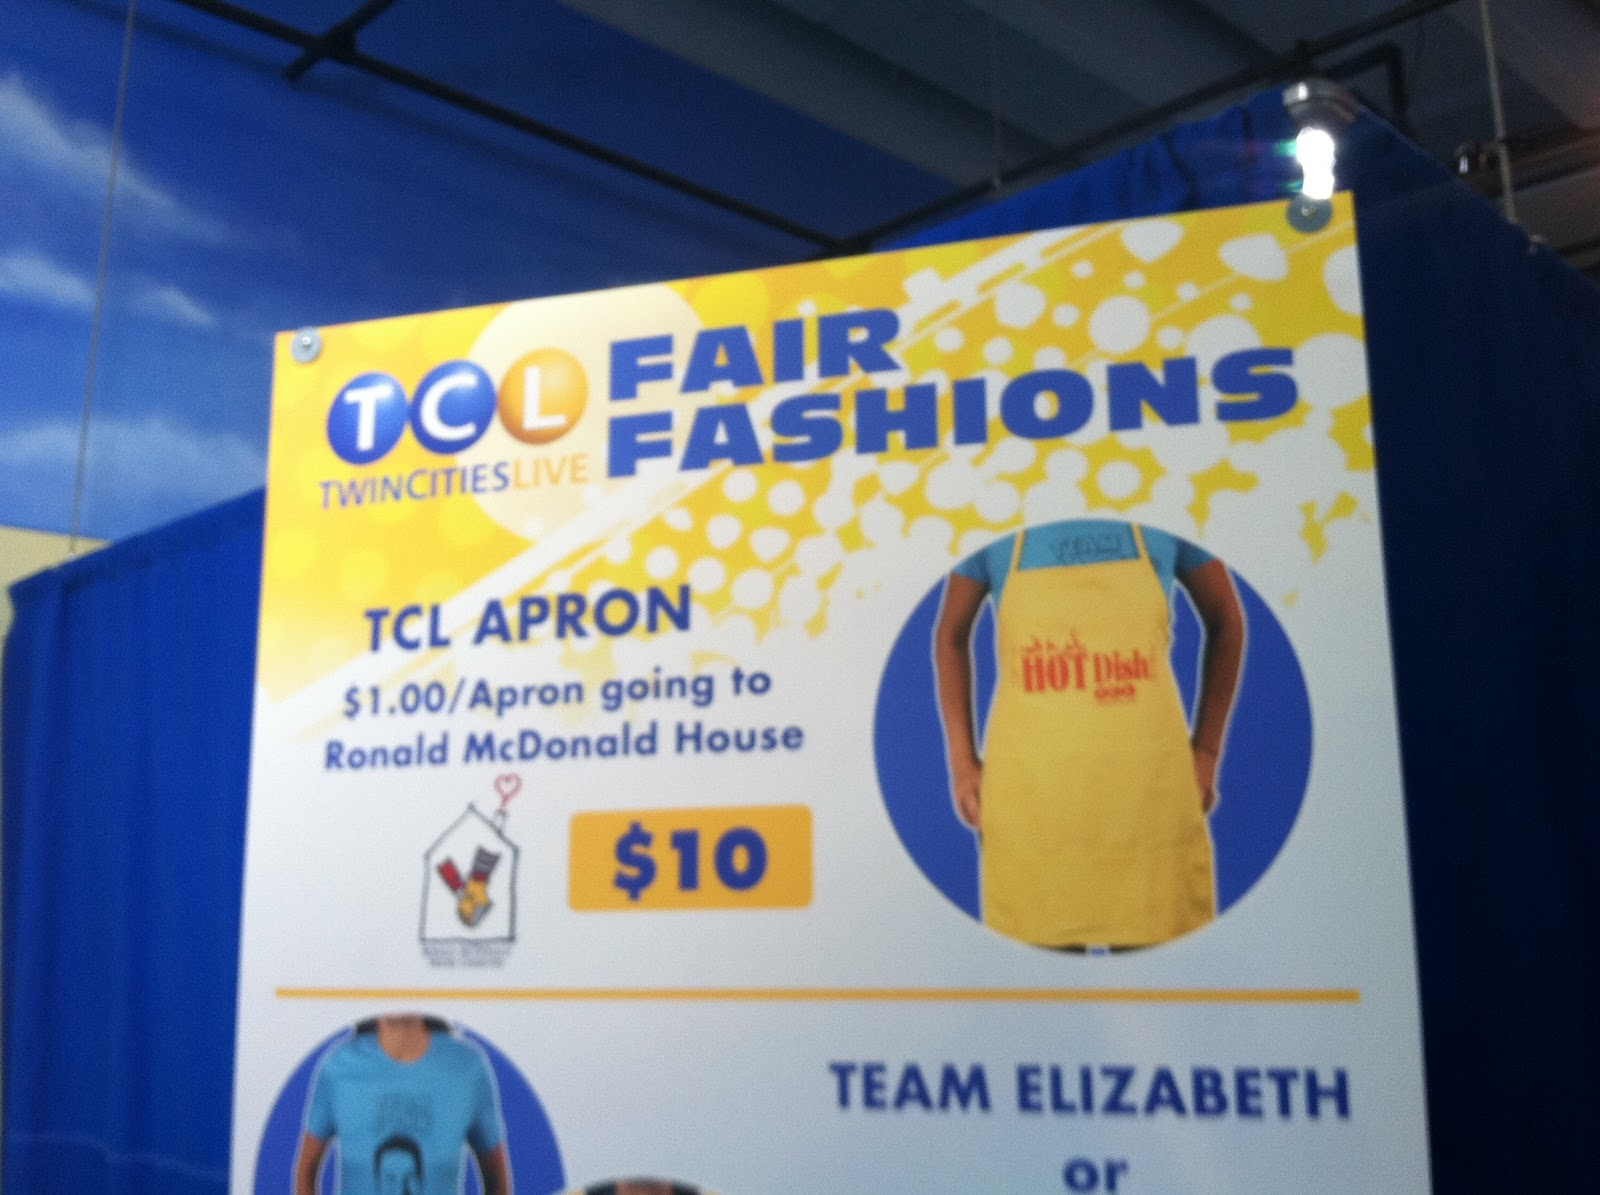 Blue apron advertising -  The Kstp Tv Broadcasts Of Twin Cities Live While You Are At The Minnesota State Fair You Can Support Rmhc Um By Purchasing A Twin Cities Live Apron At